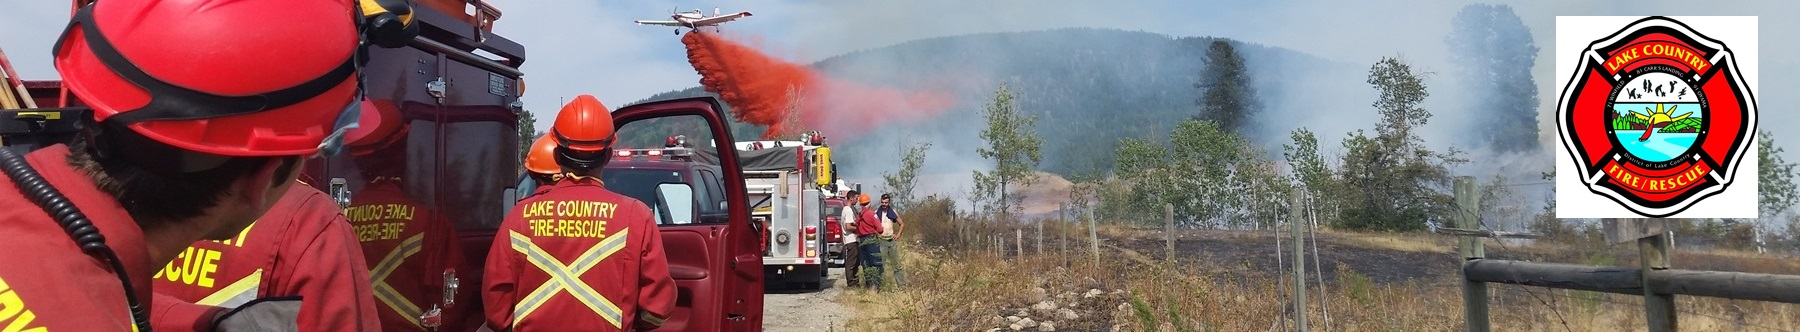 Lake Country volunteer firefighters fight a wildfire